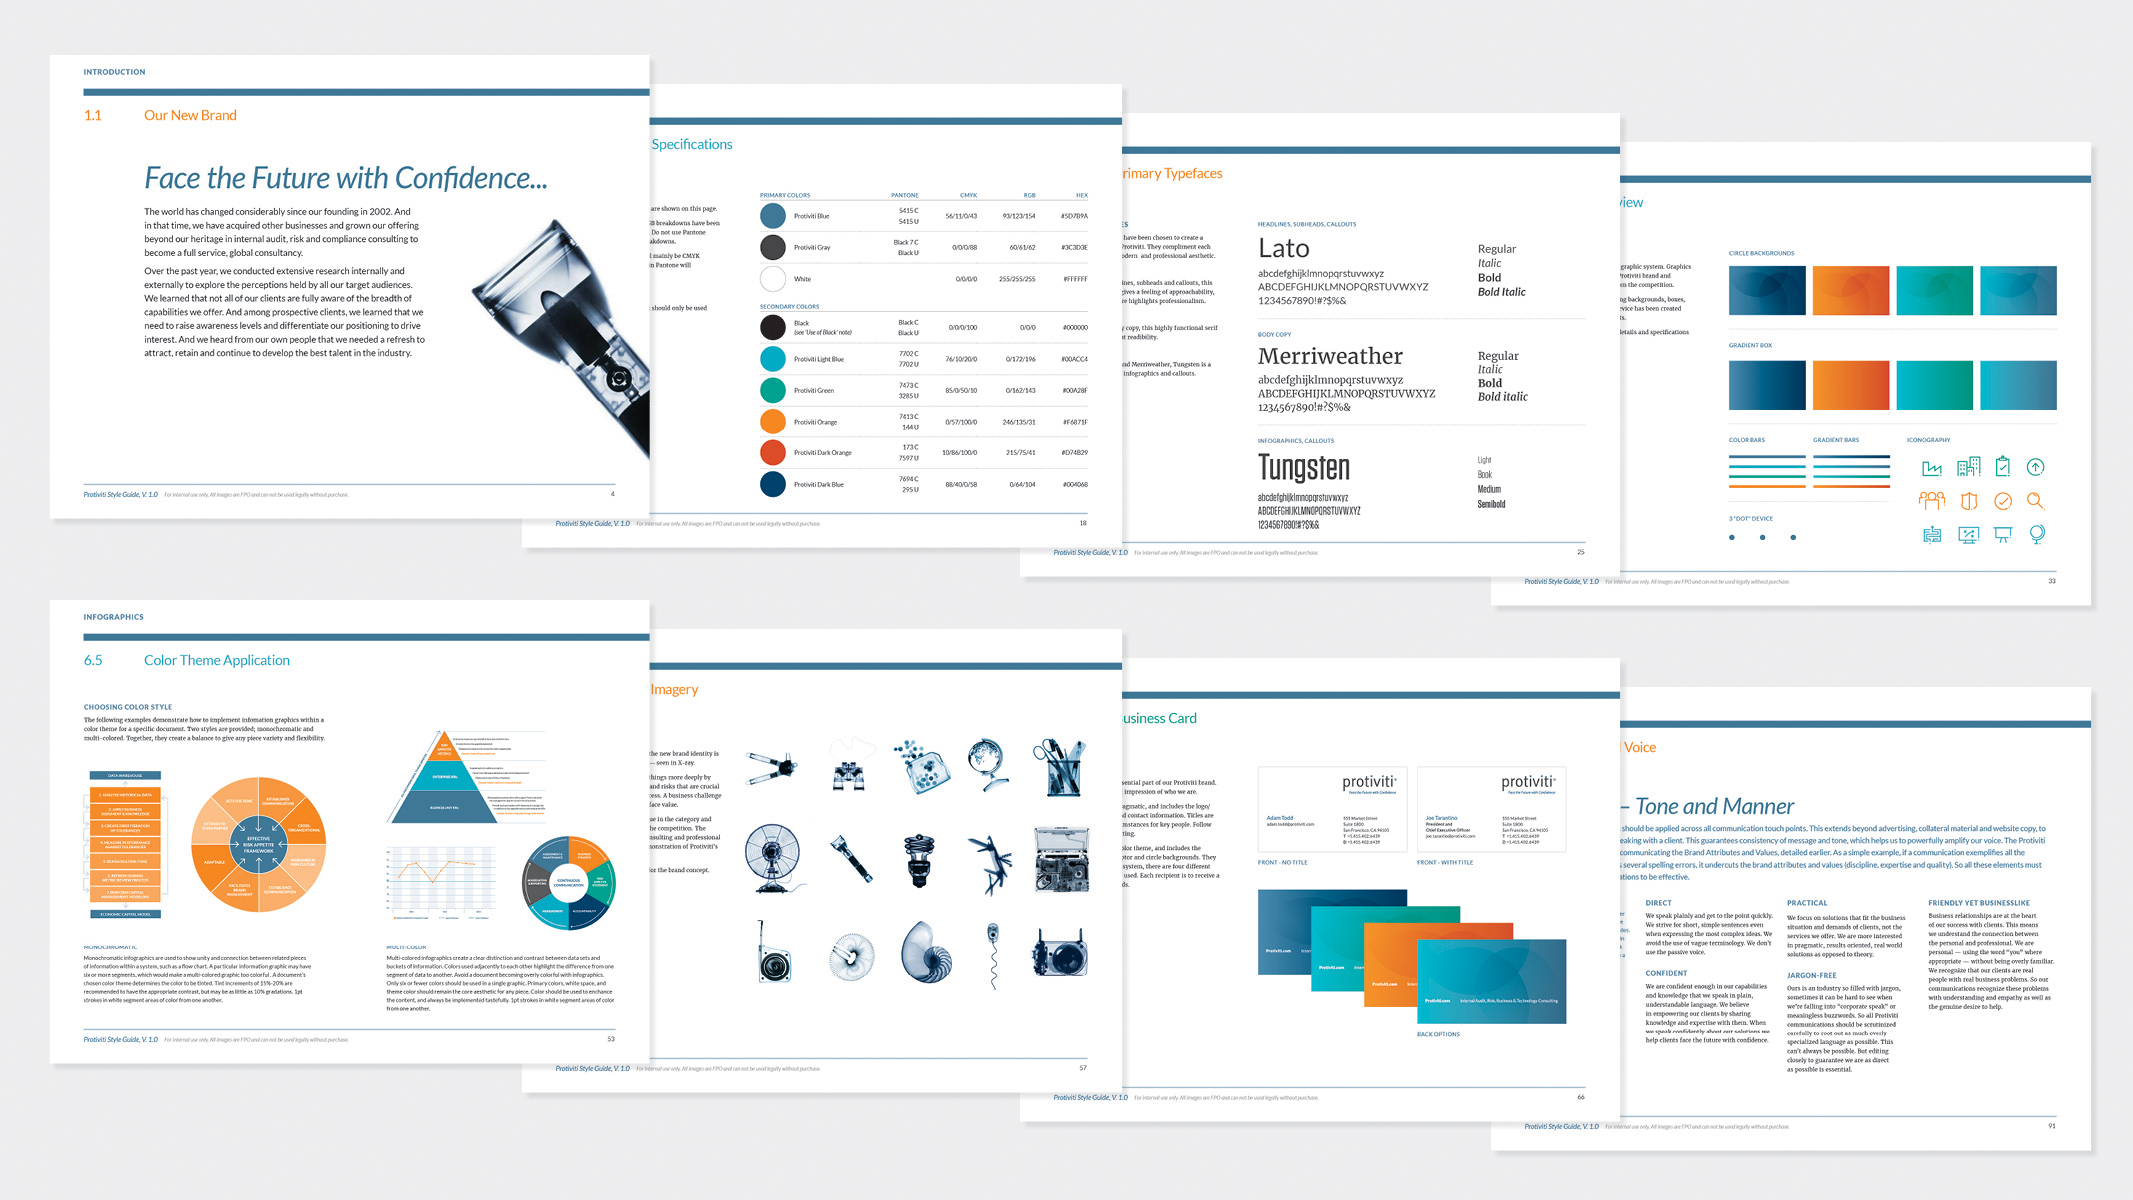 The Mixx authored a comprehensive set of guidelines to ensure that design elements are appropriately and successfully used by Protiviti and their partners. Sections include detailed direction on use of logo, color, typography, graphic elements, charts, and photography.